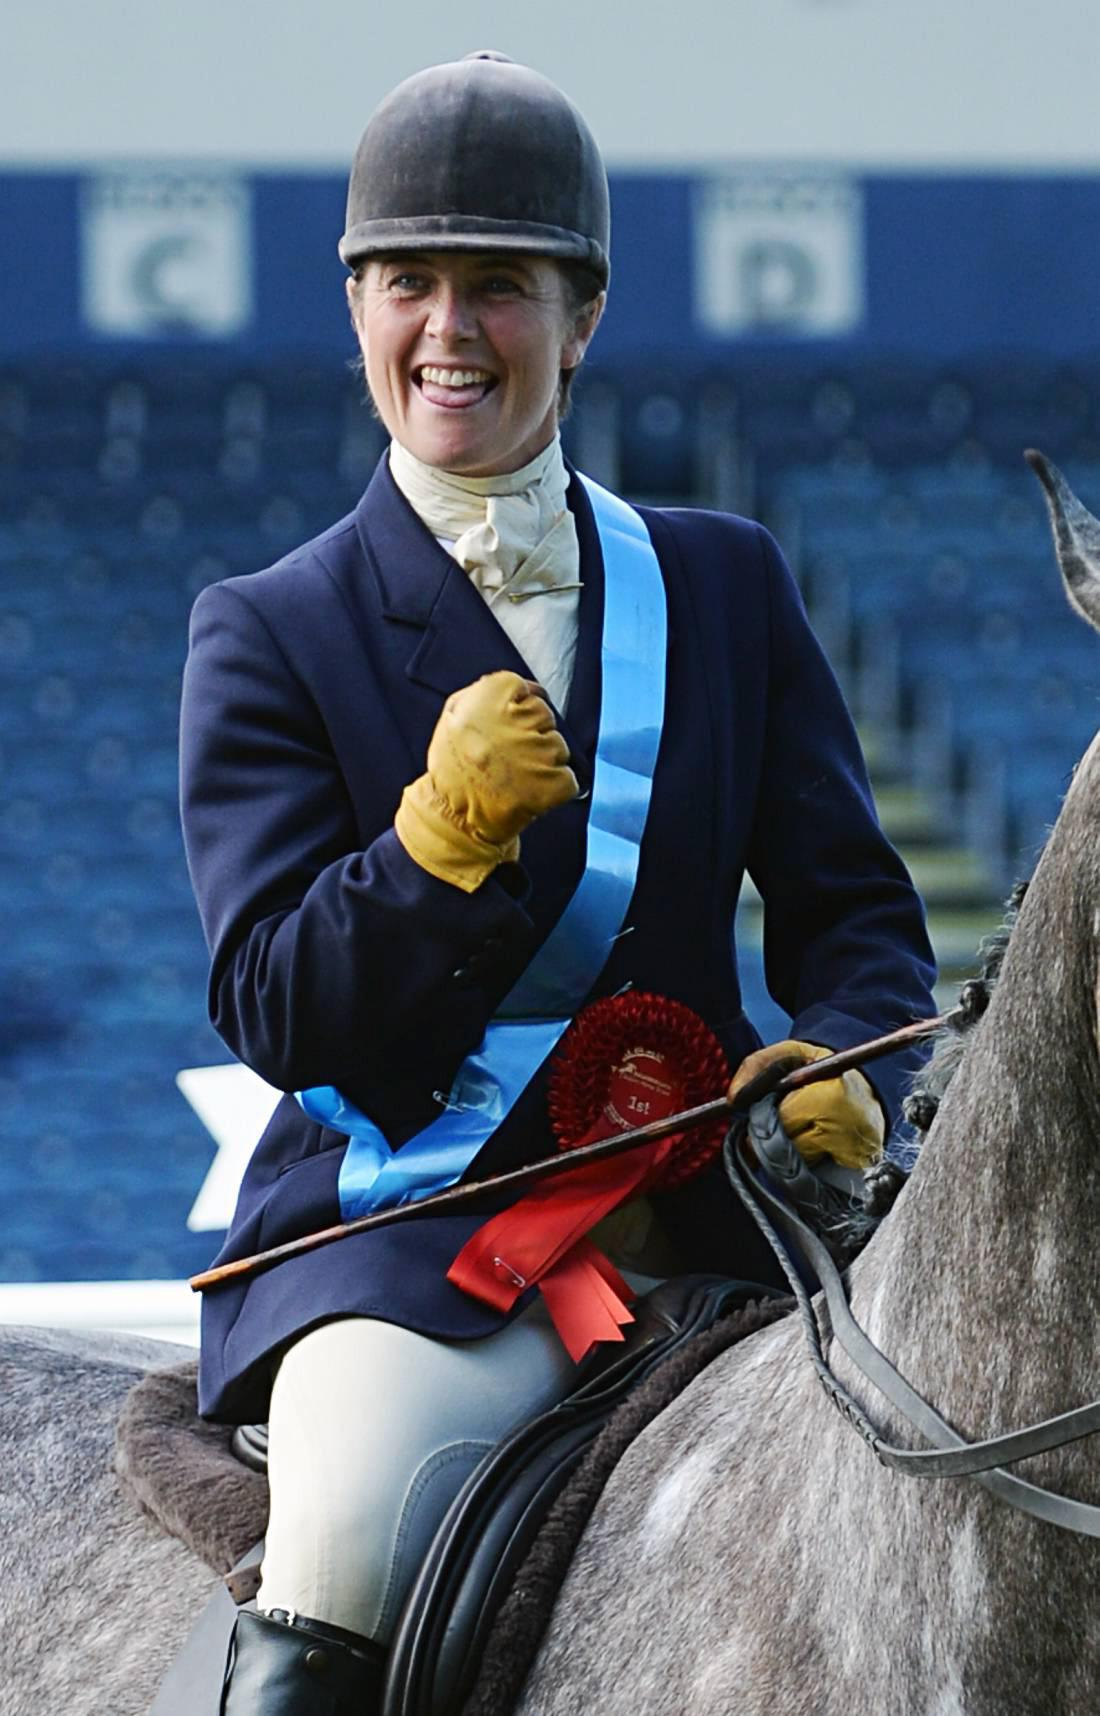 Irish judges selected for HOYS 2015